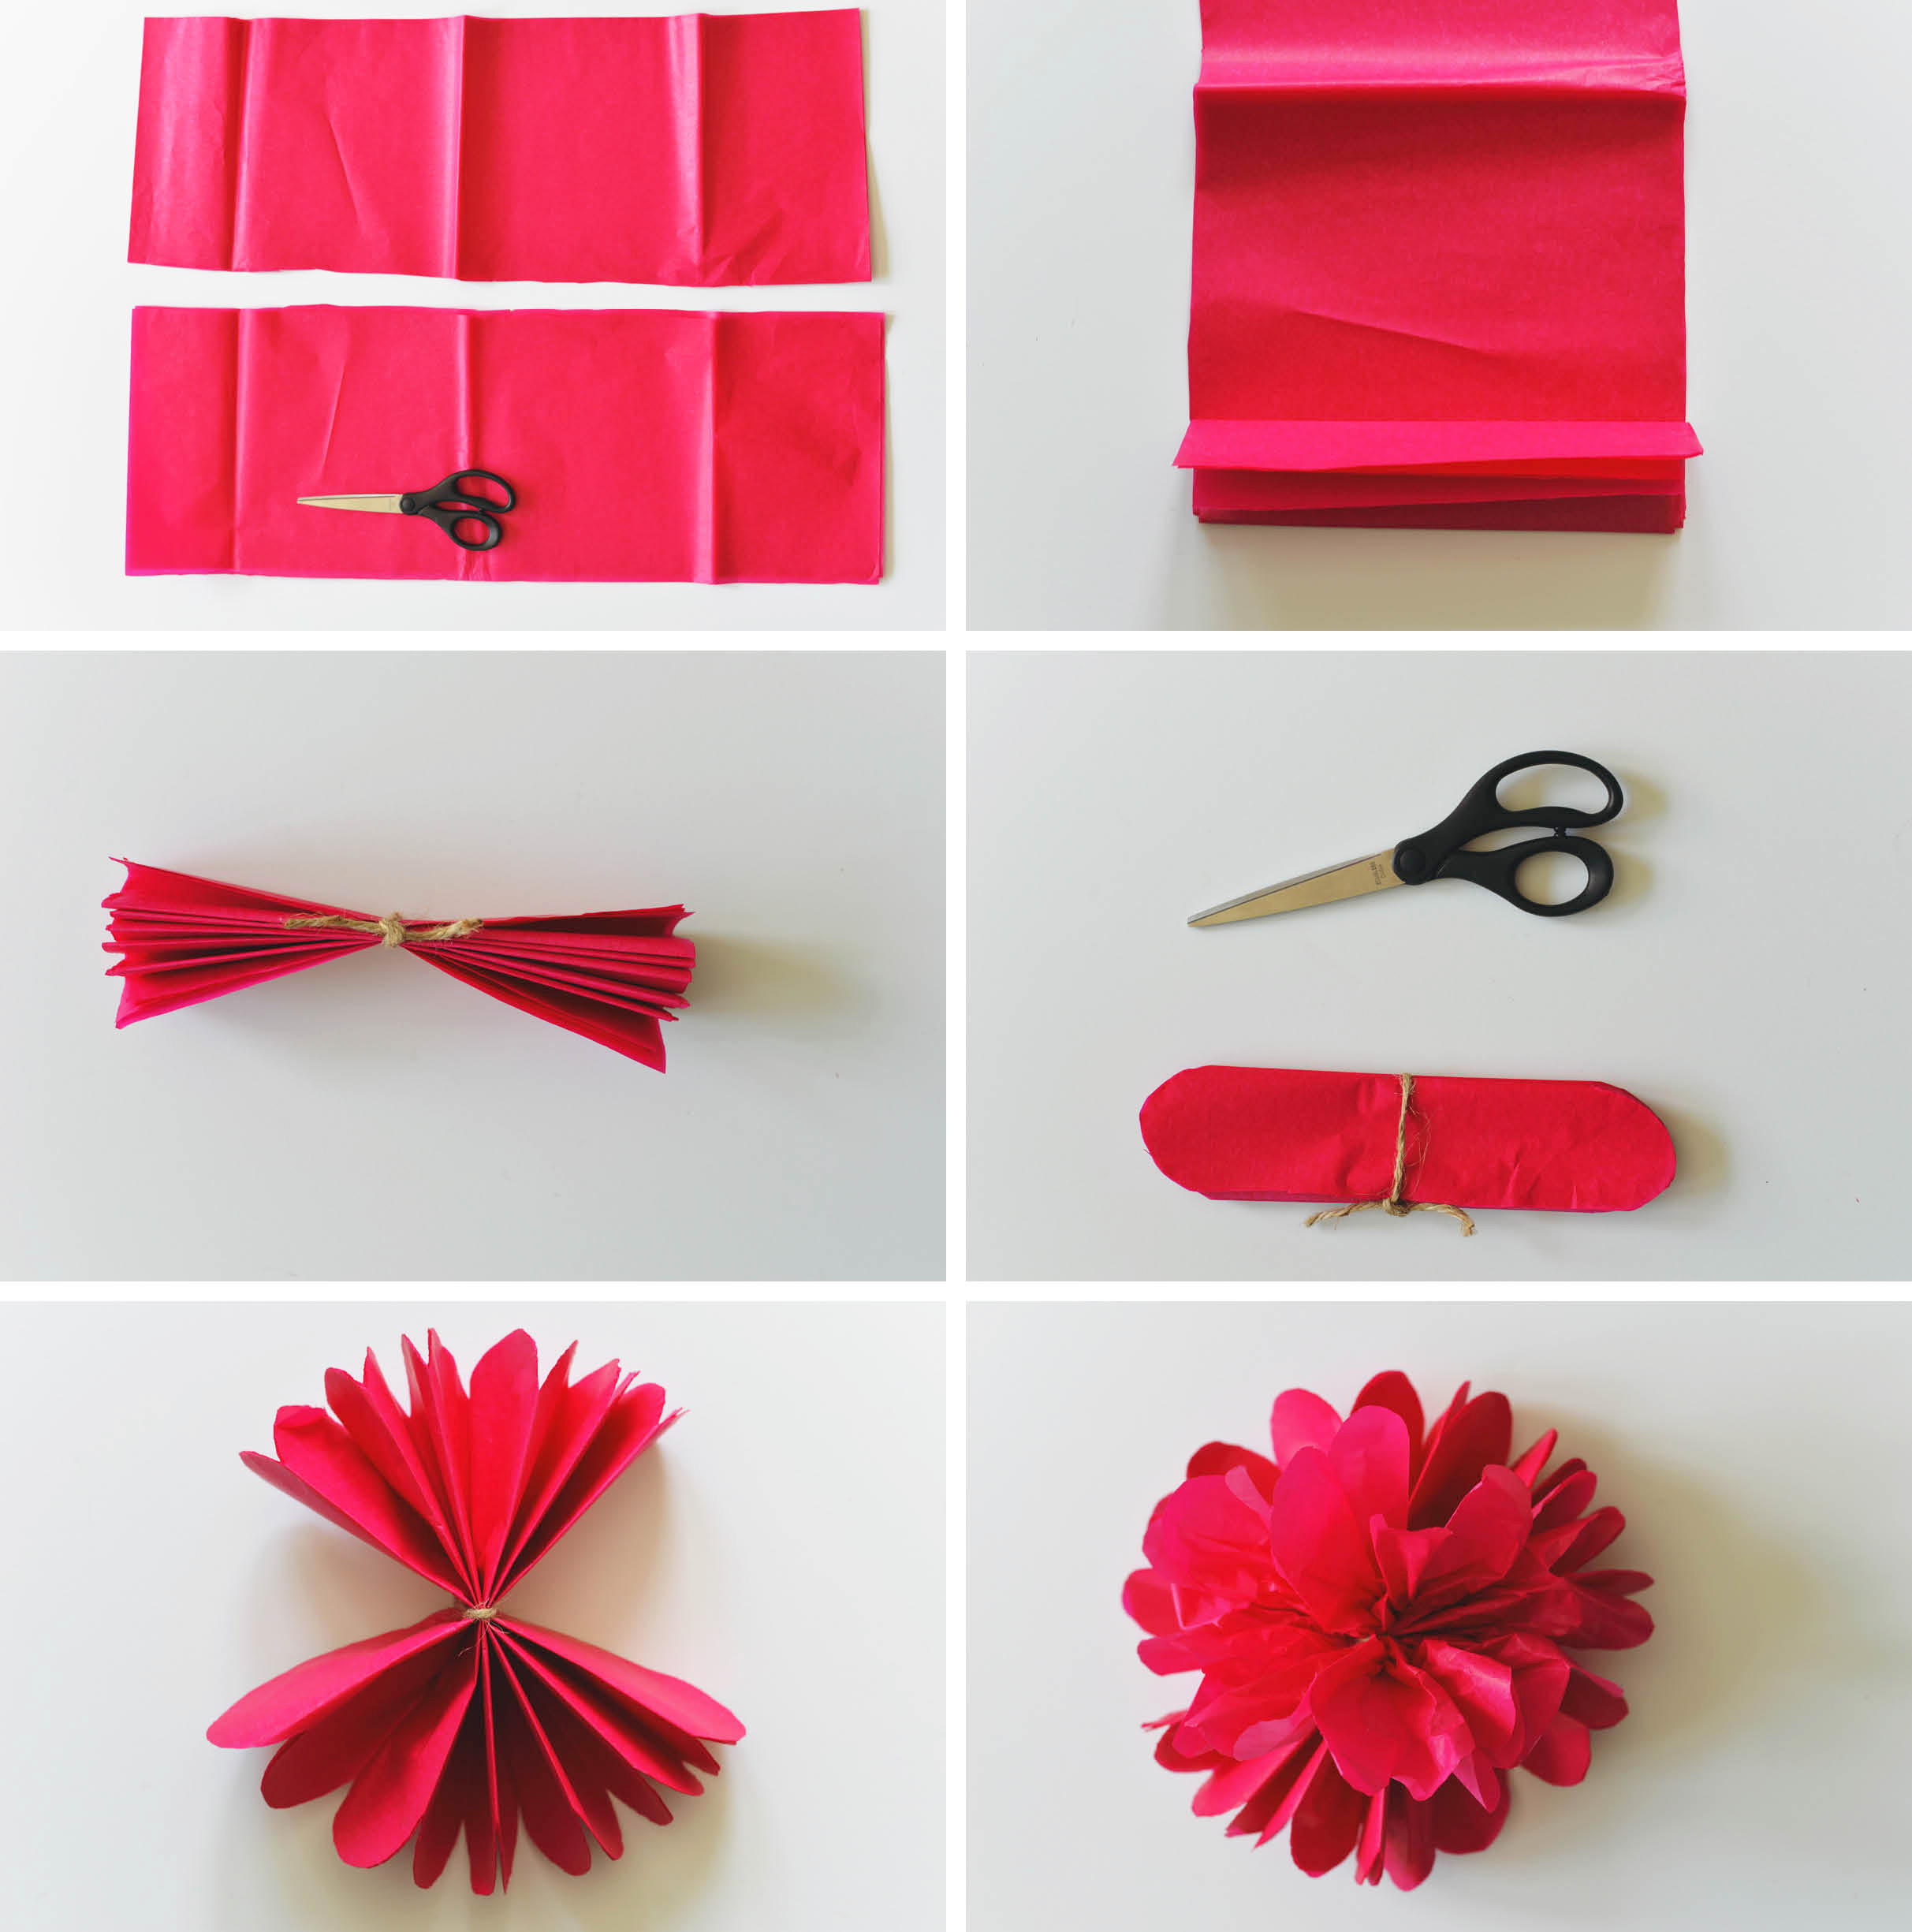 How to make a tissue paper flower tiredriveeasy how to make a tissue paper flower mightylinksfo Gallery